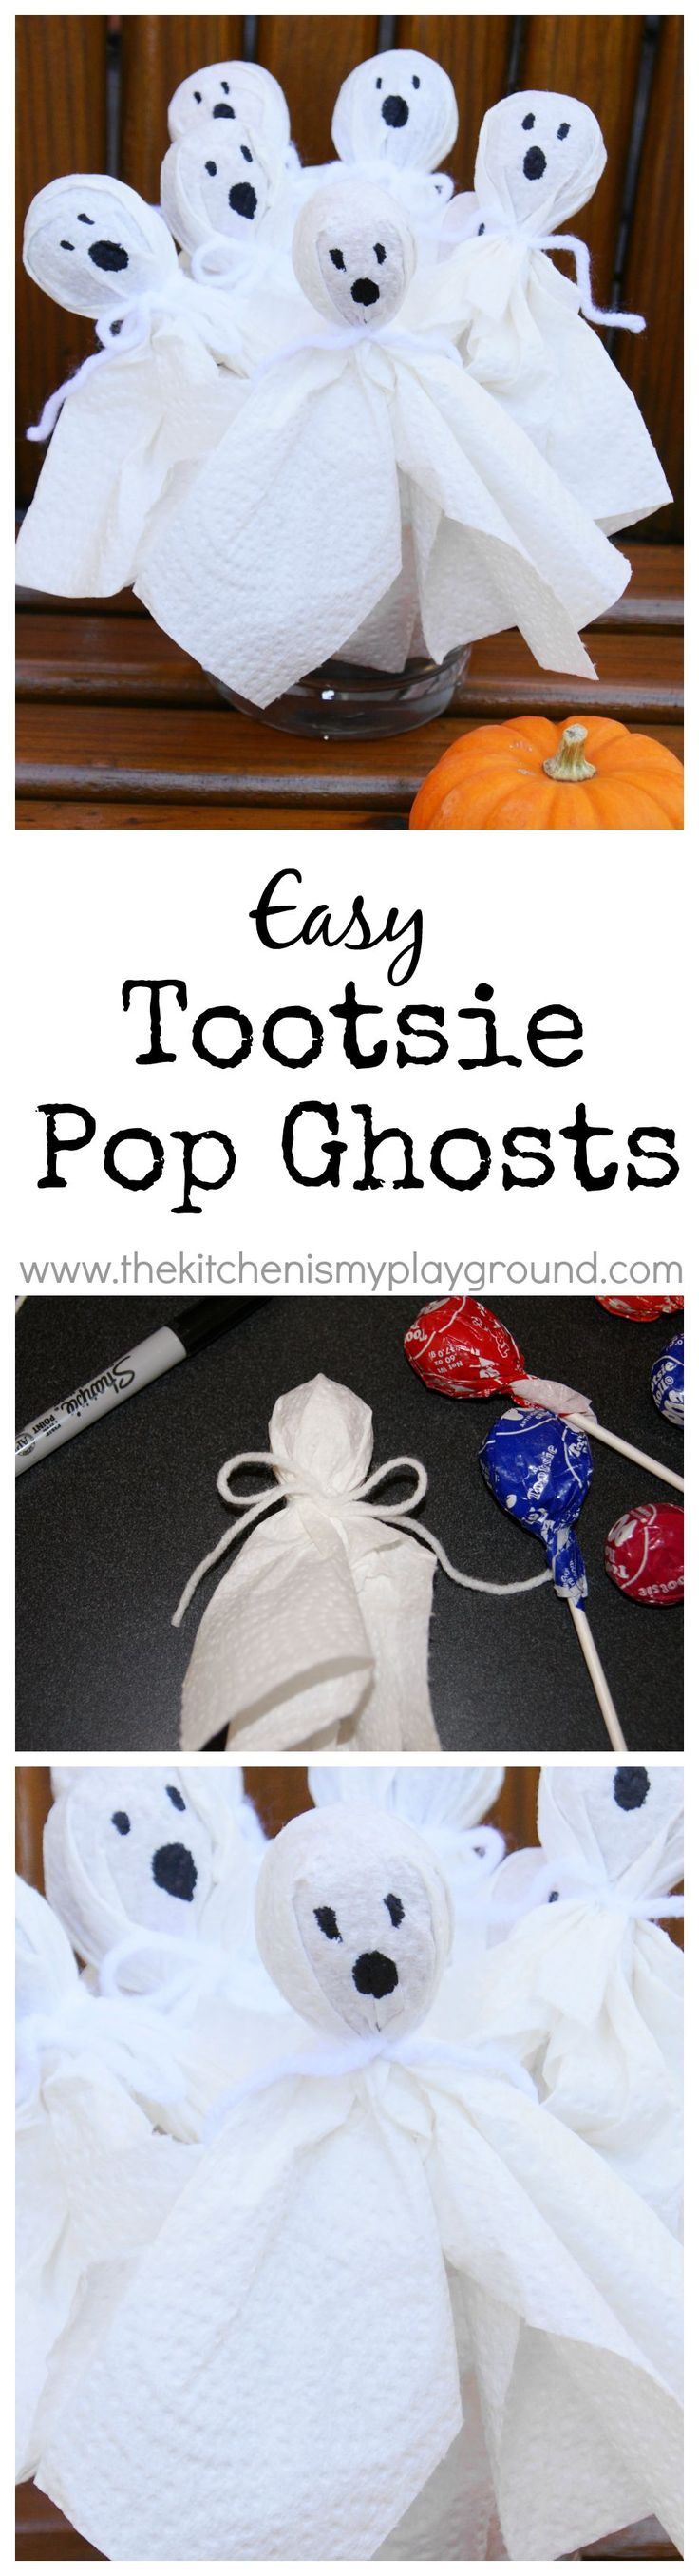 Super Easy Tootsie Pop Ghosts ~ a Halloween craft for kids that they'll LOVE!   www.thekitchenismyplayground.com